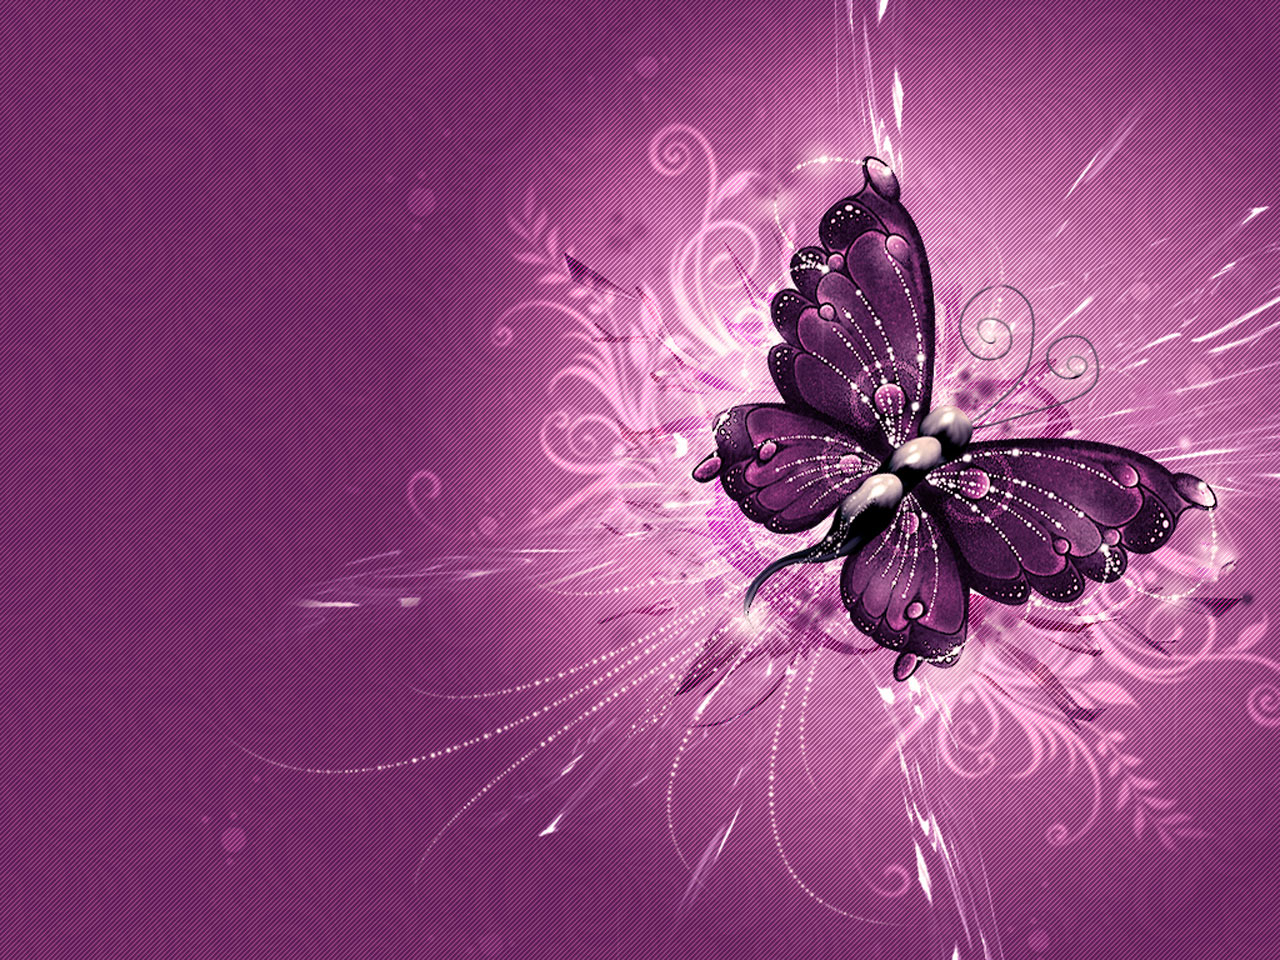 Download Wallpaper Purple in high resolution for Get Wallpaper 1280x960